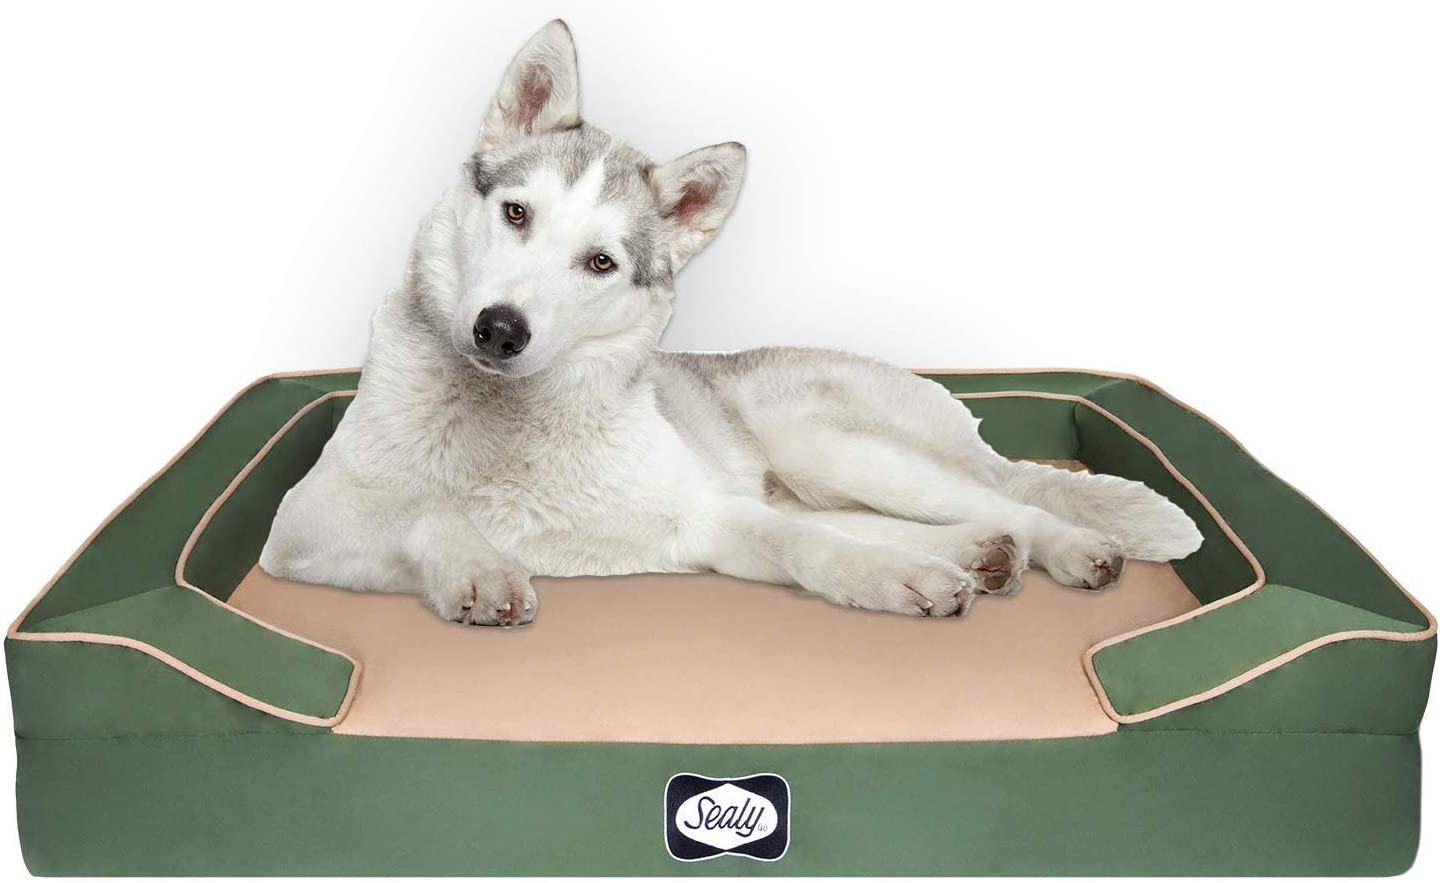 Sealy Lux Quad Layer Orthopedic Dog Bed with Cooling Gel